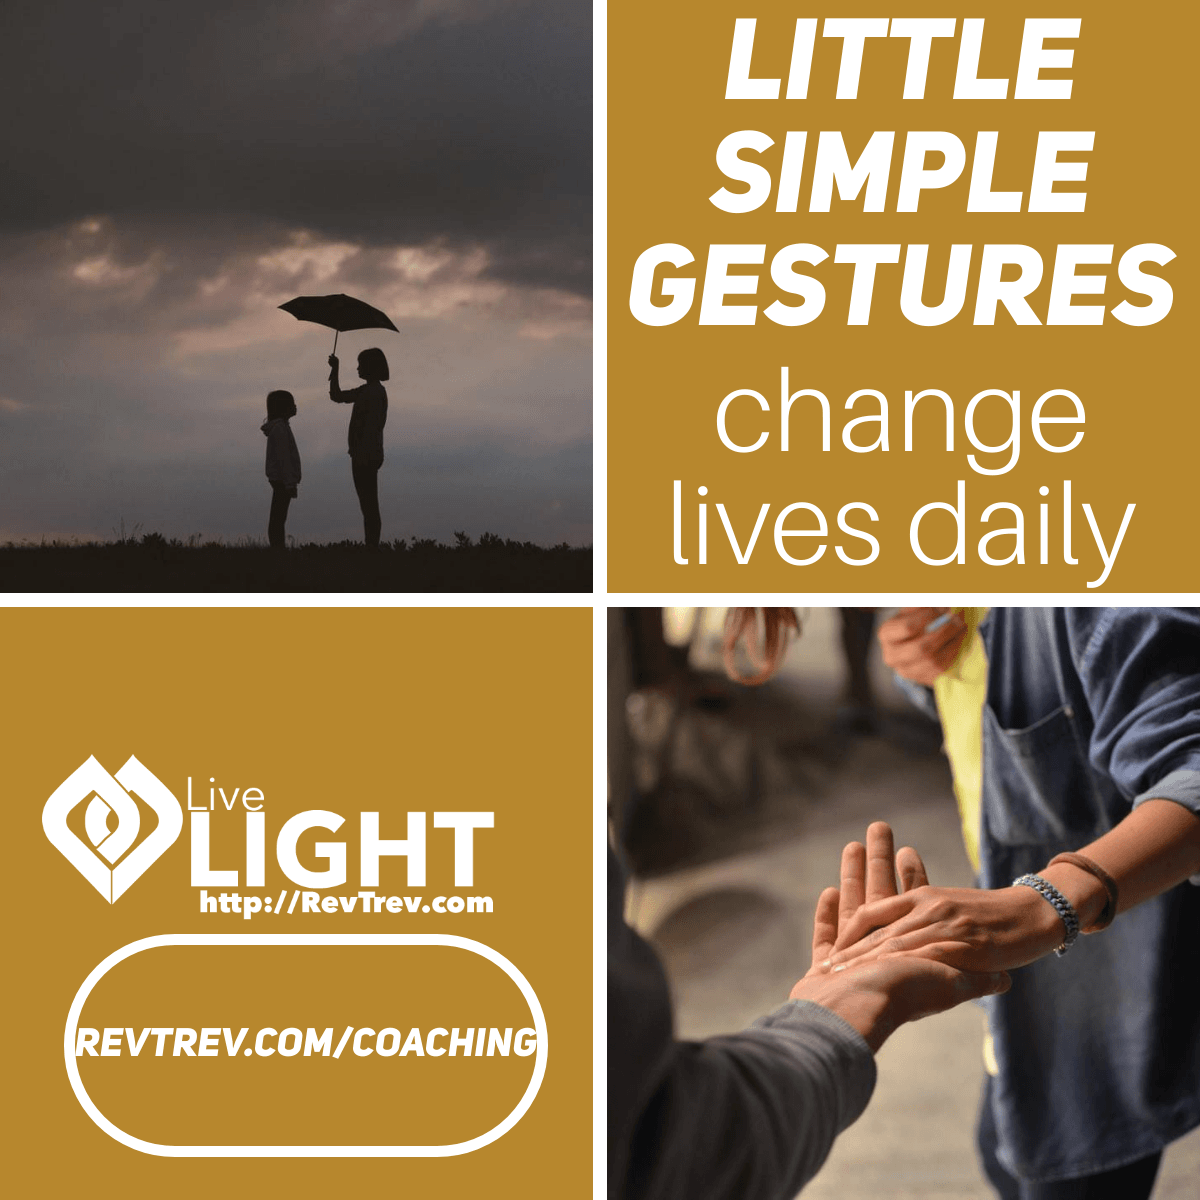 Little simple gestures change lives daily via @trevorlund